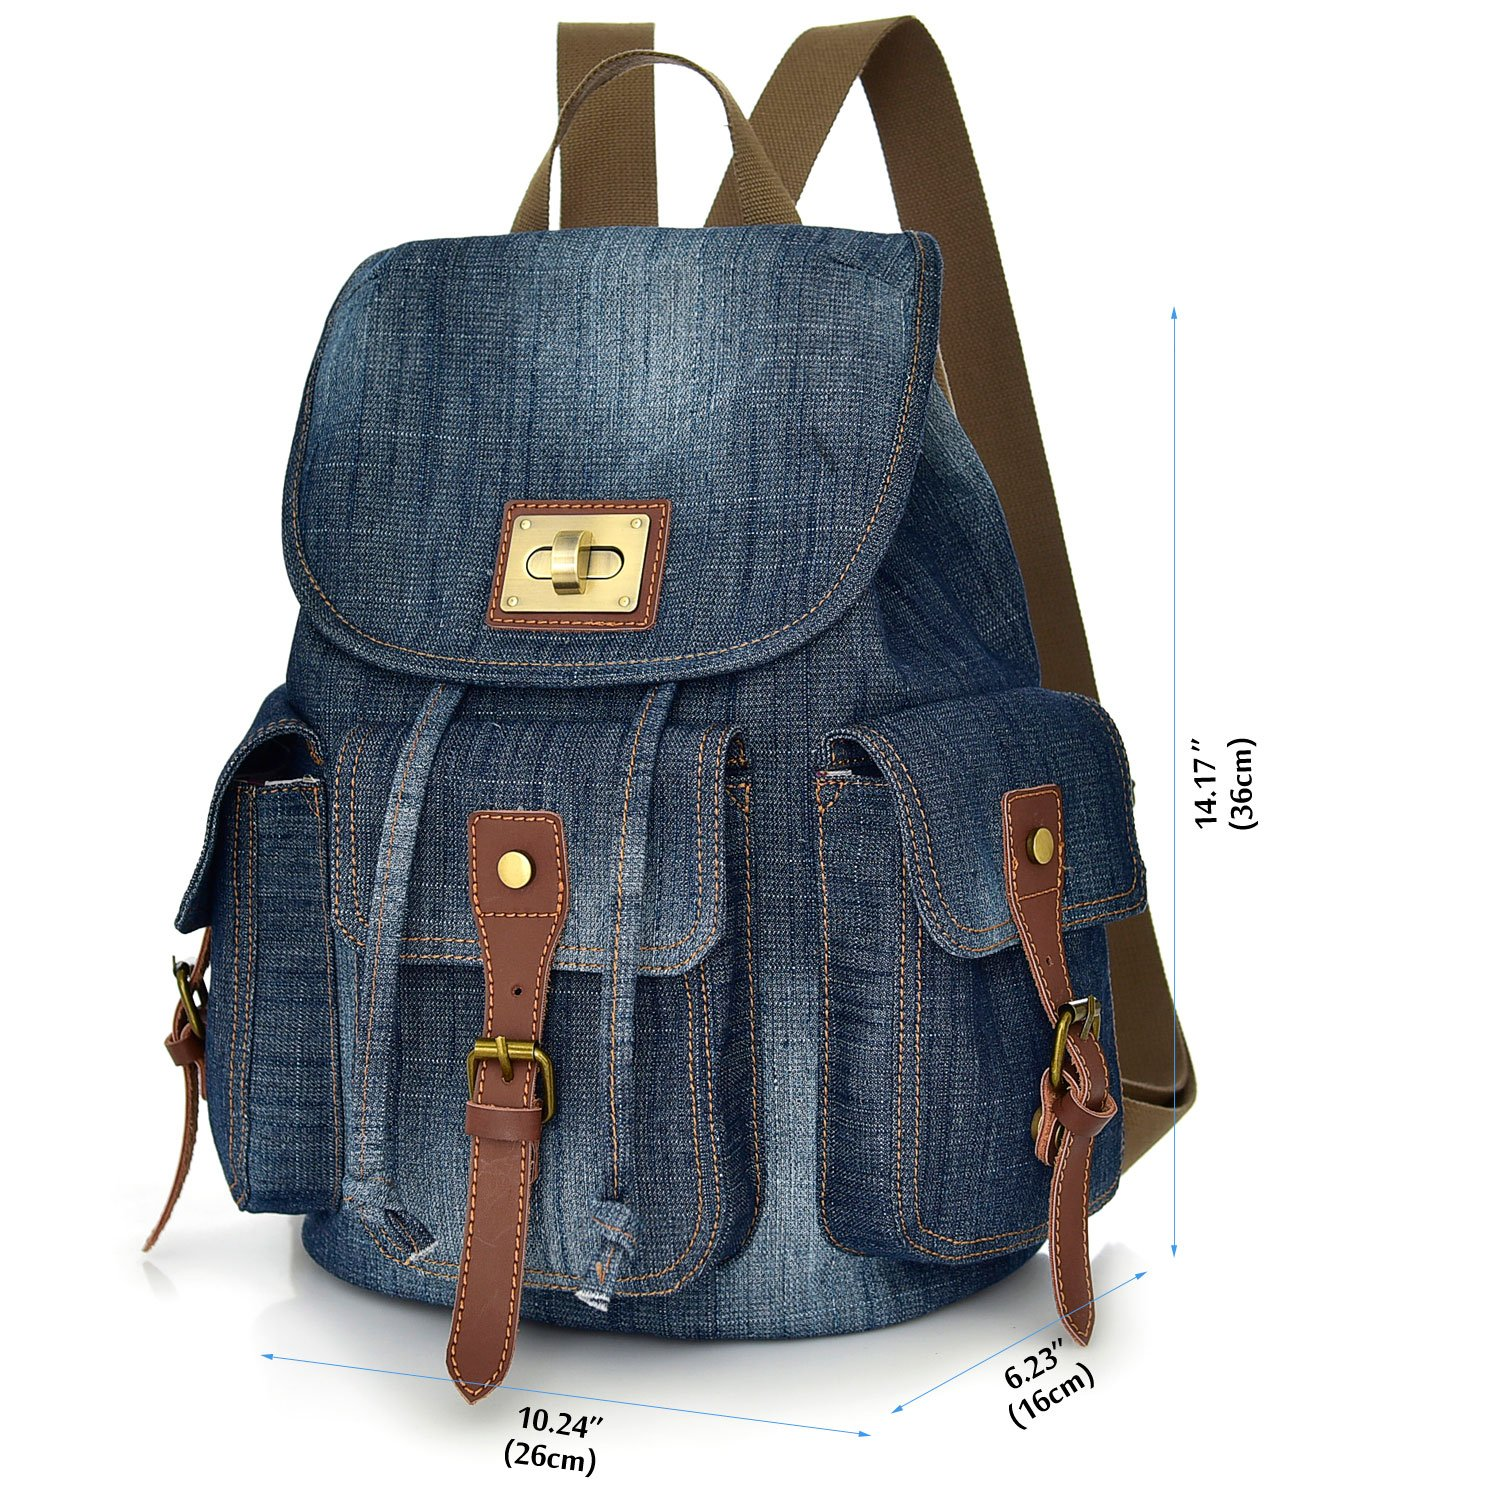 435df77b6c00 Women Denim Backpack Purse School Bookbag for Teenager Girls Vintage Travel  Rucksack Jeans Bag Stonewash College Student Daypack for Textbook  Binder(Green)